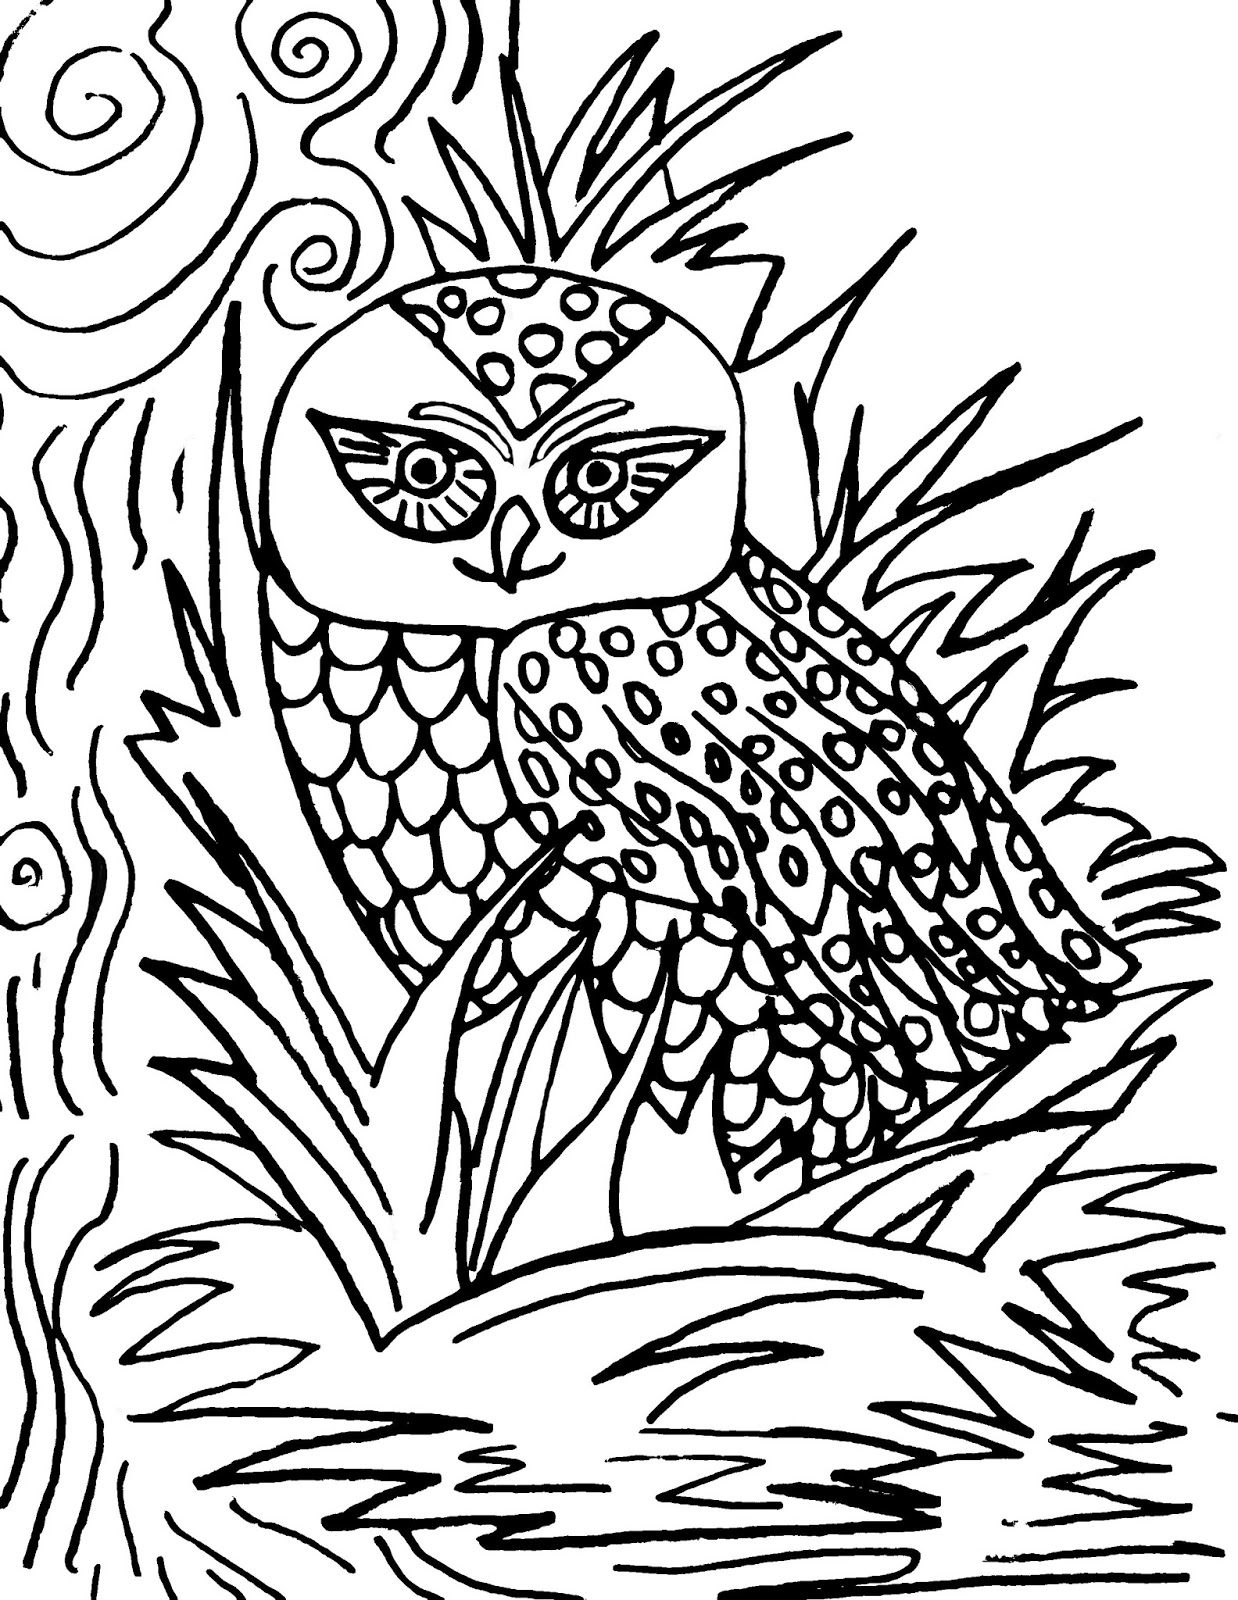 Christian Images In My Treasure Box: Home Drawn Owl